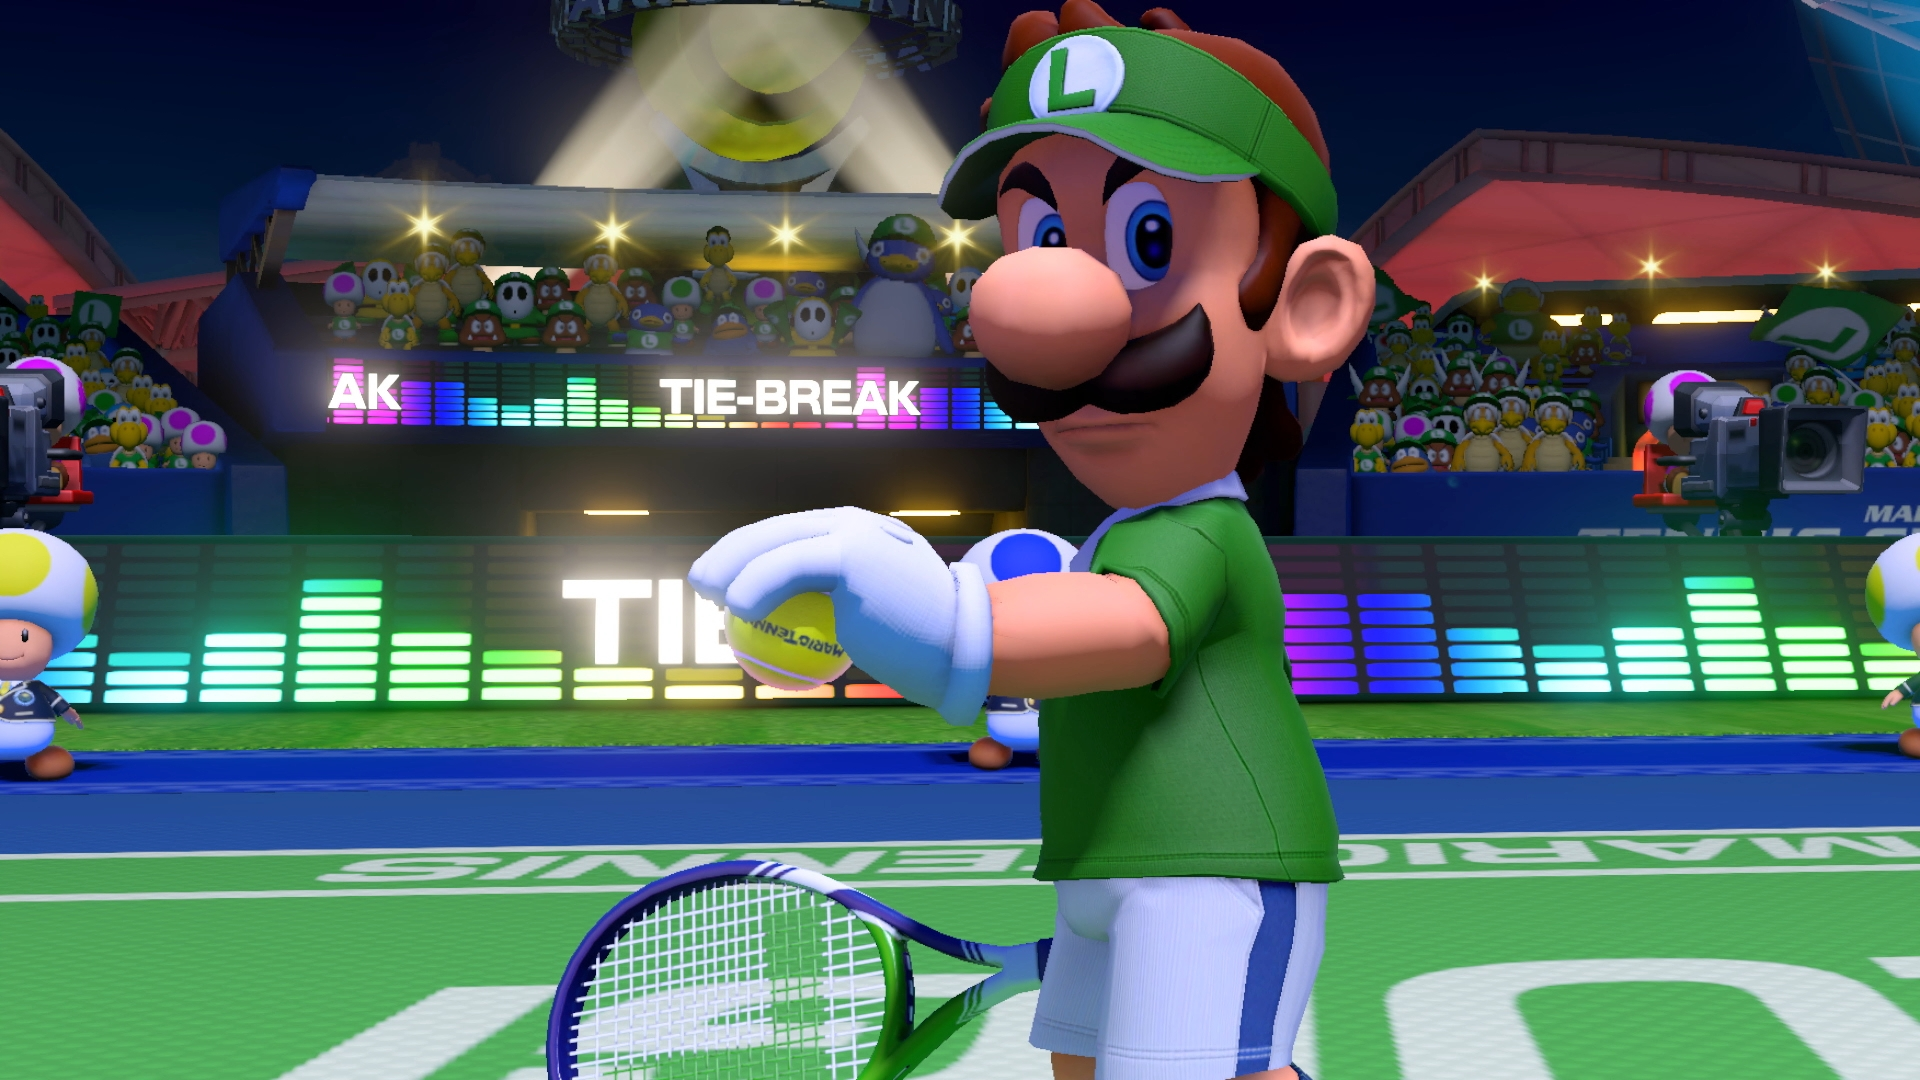 Mario Tennis Aces arrives on Switch this spring